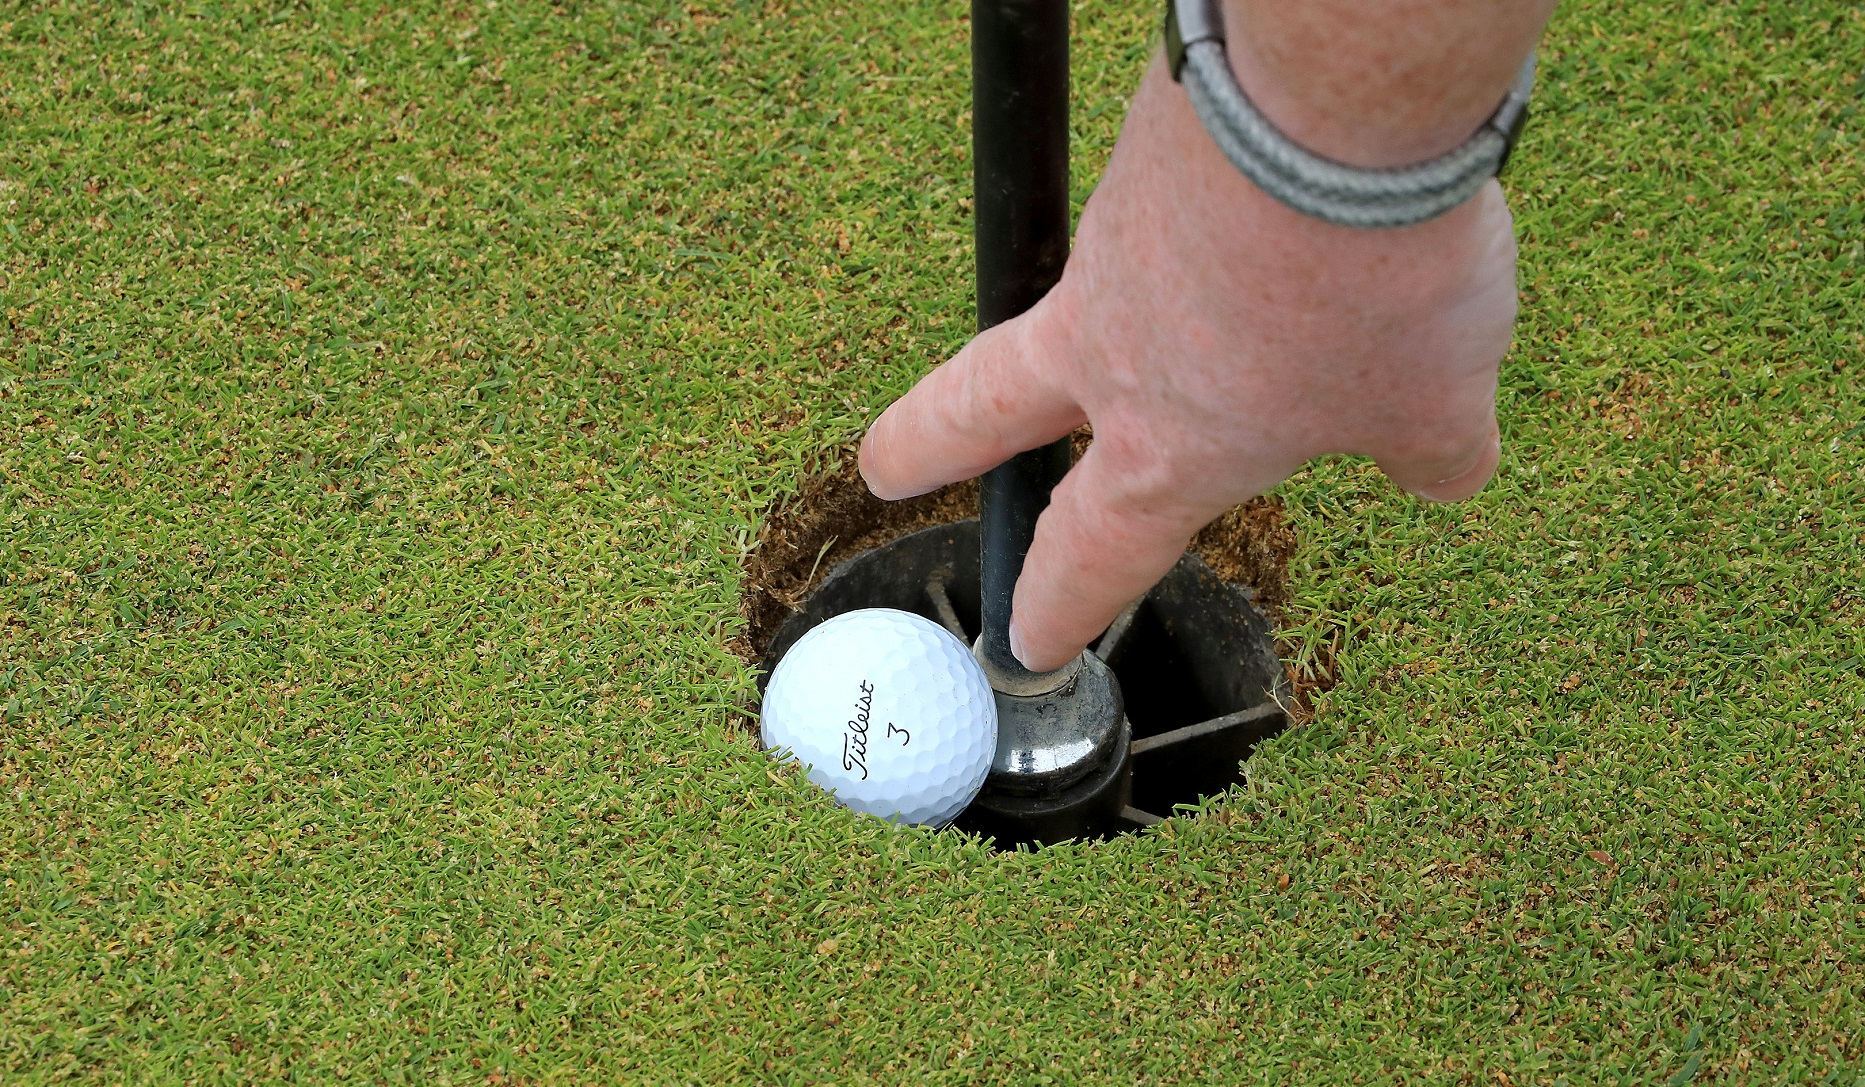 Hole-in-one with a putter